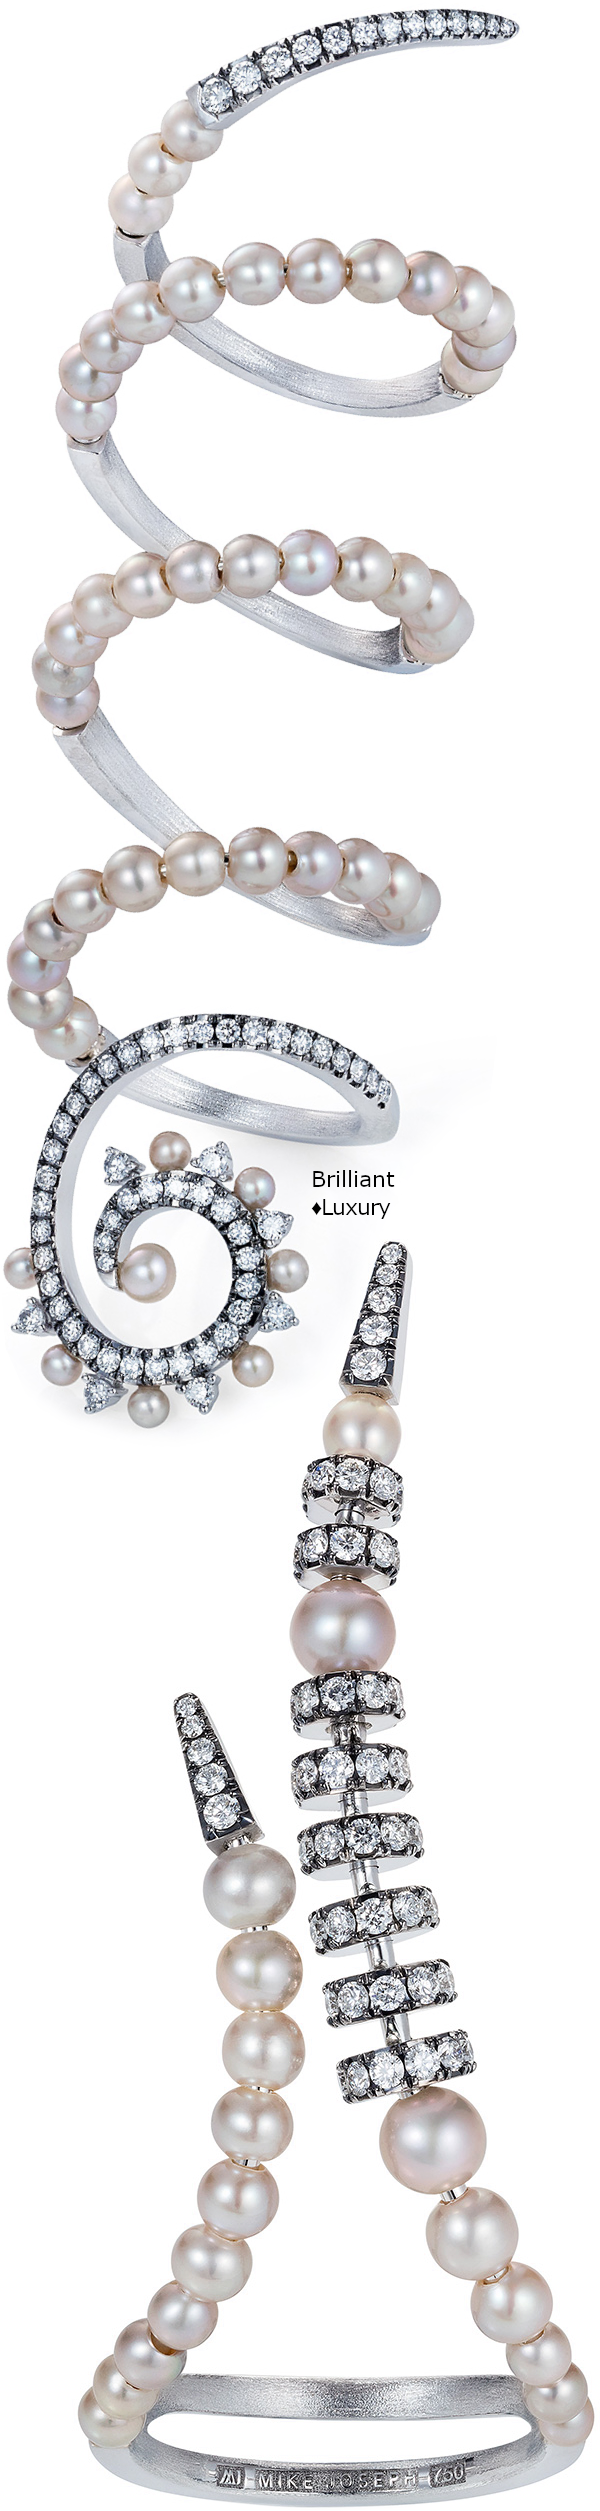 Mike Joseph edgy beauty 18k white gold diamond and grey pearls rings #jewellery #accessories